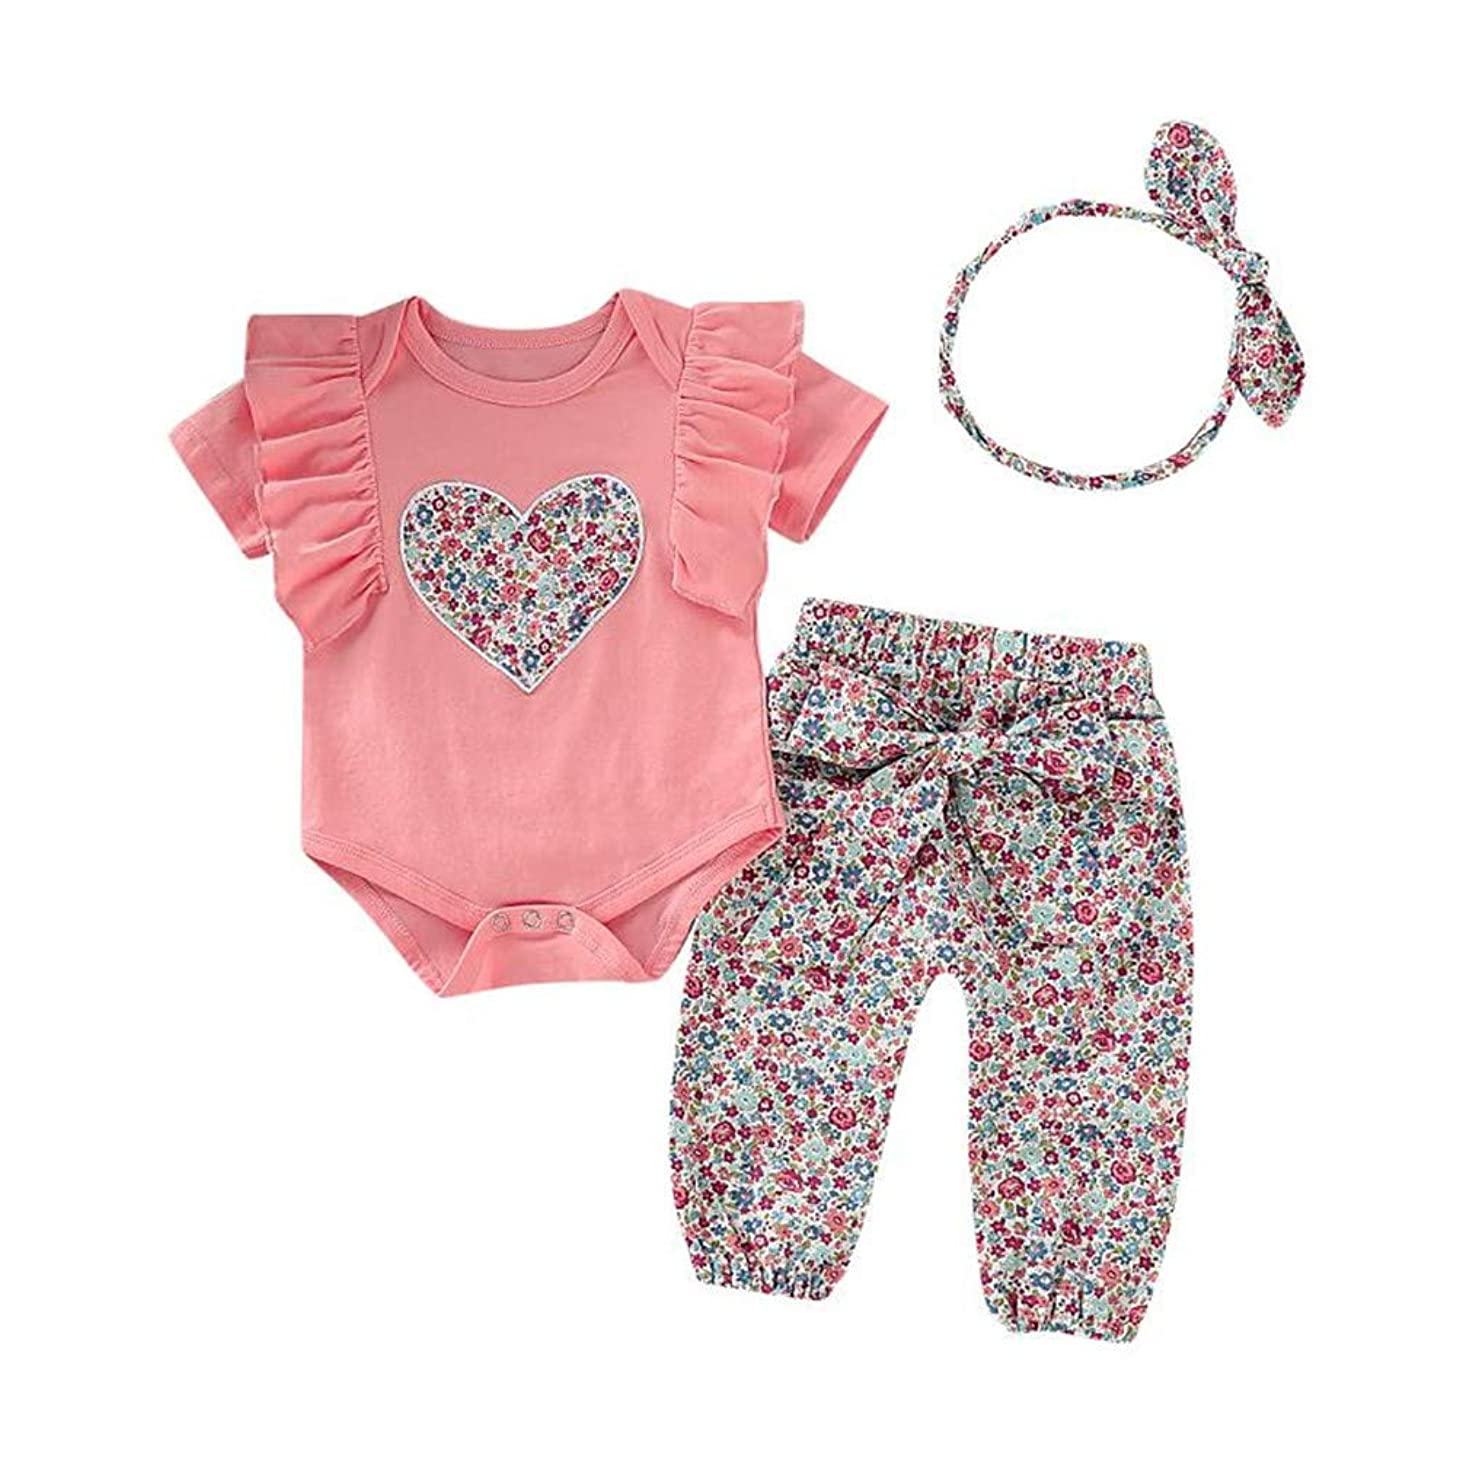 Baby Girl Clothes Infant Girl Clothes Toddler Baby Girl Outfits Romper Bodysuit Jumpsuit Newborn Sets 3 Pcs